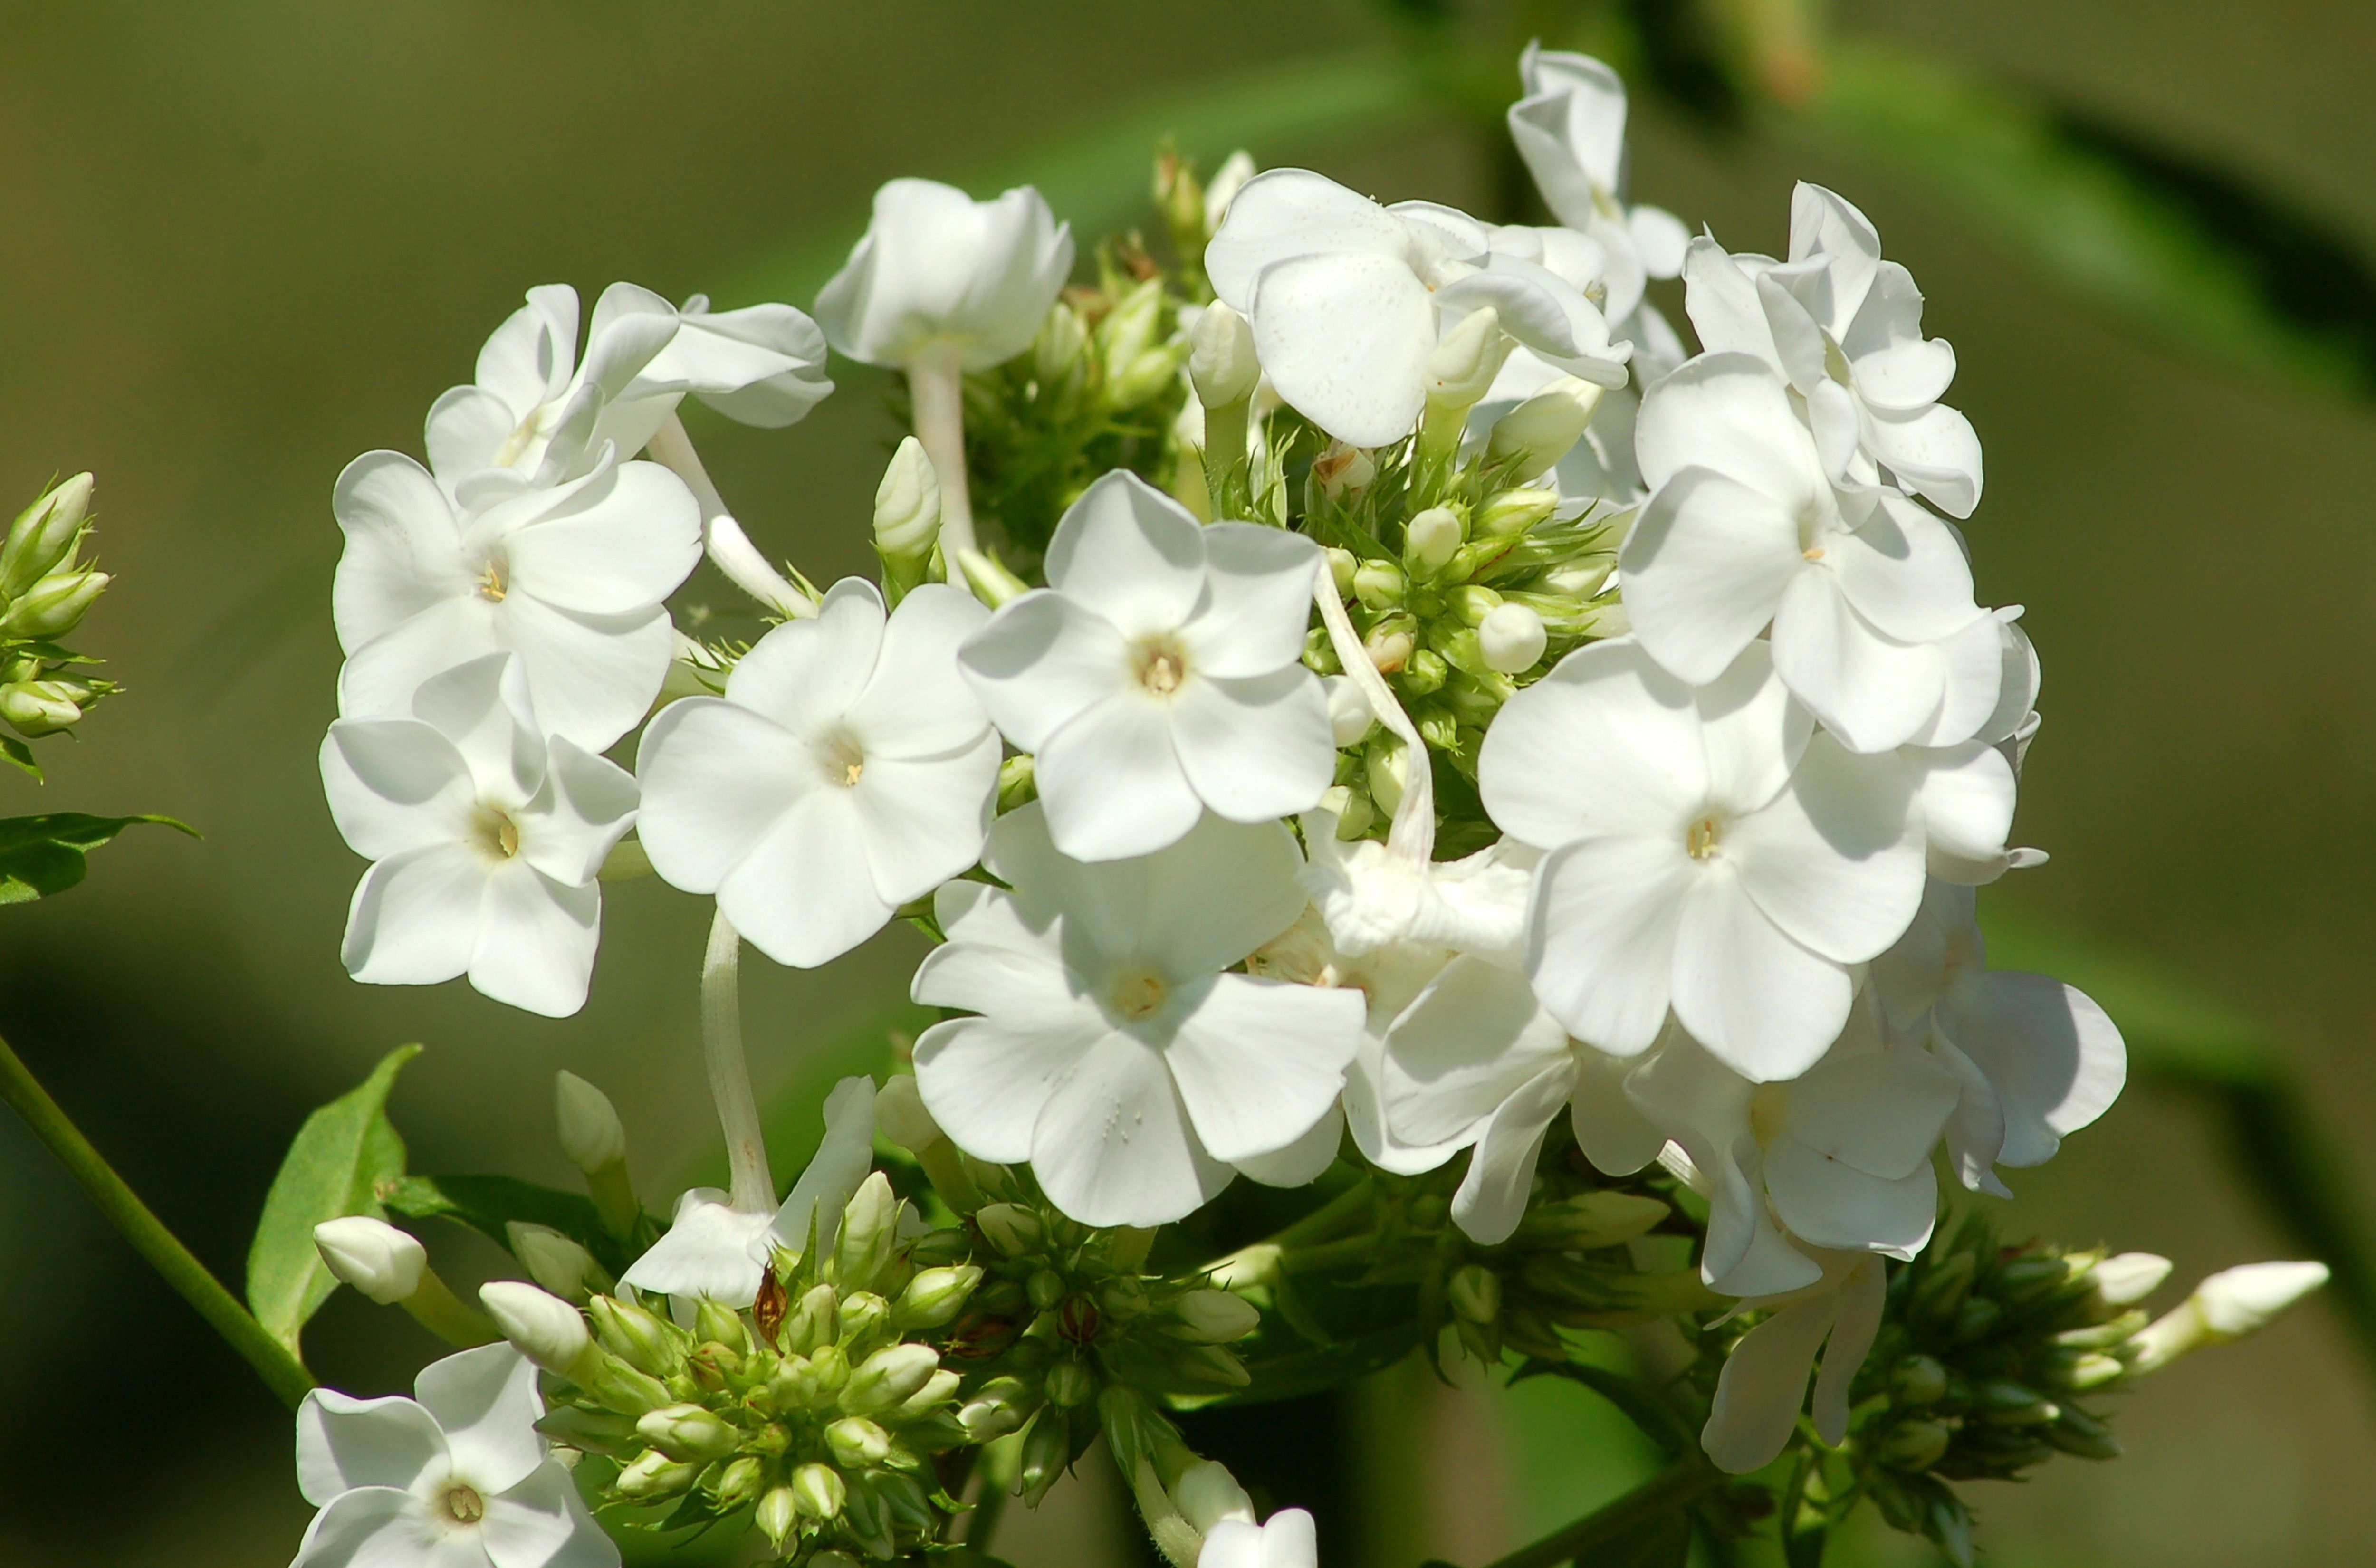 Don T Be Without David Garden Phlox For Another Summer Kwiaty